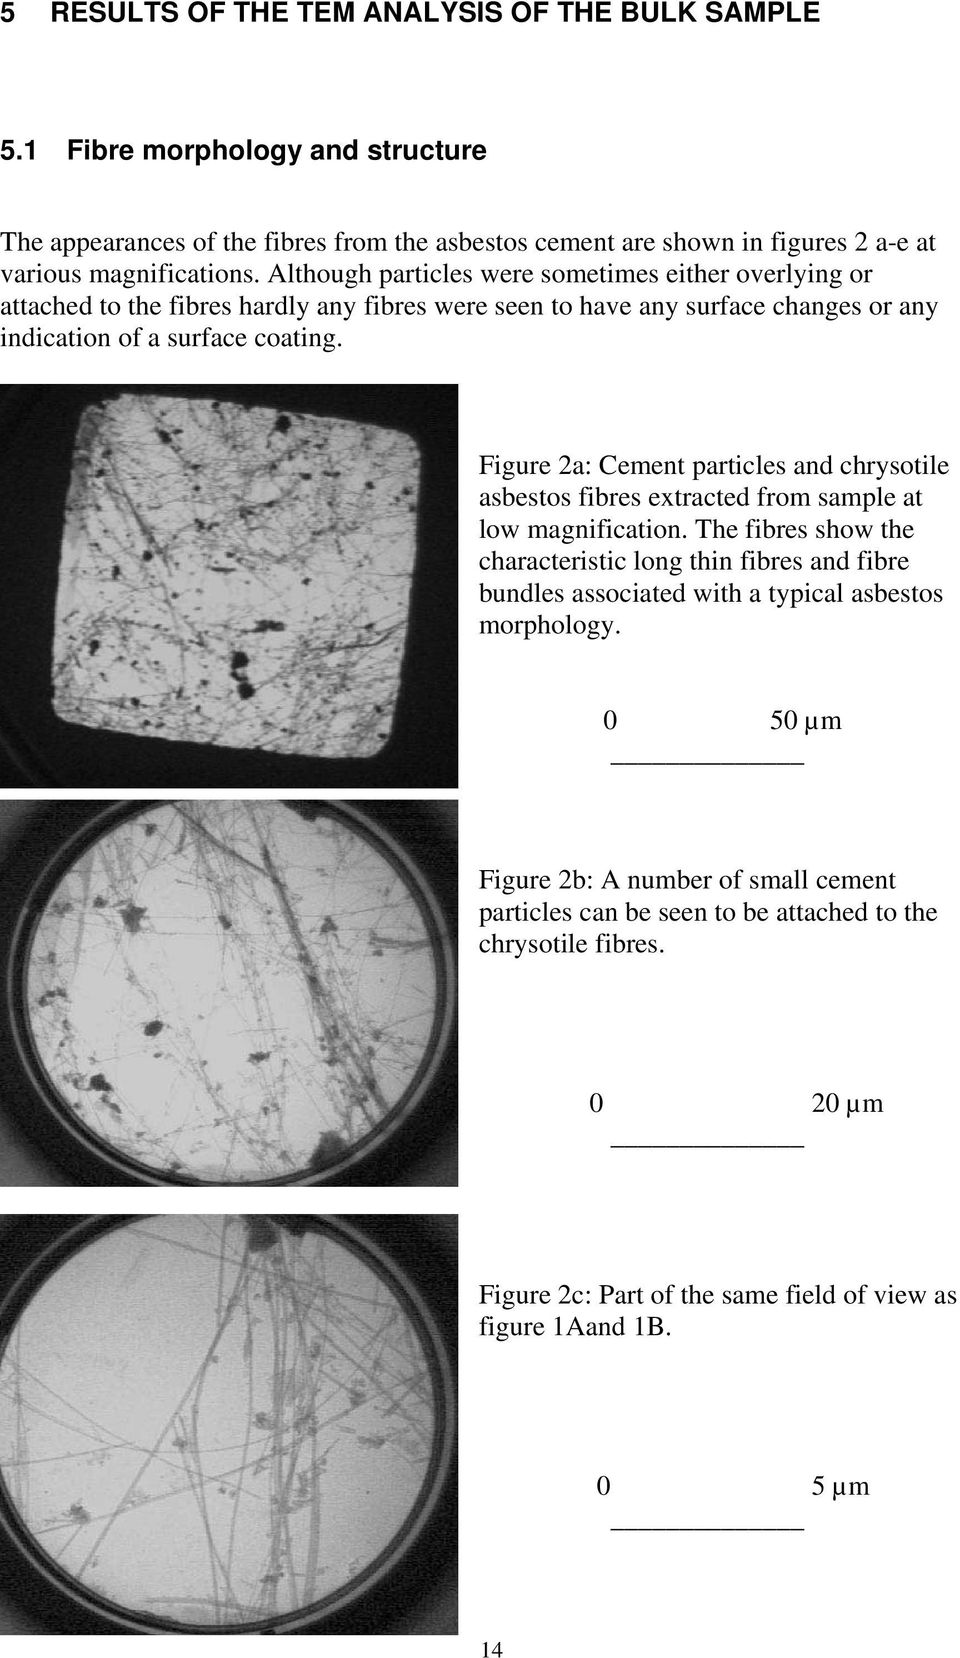 Figure 2a: Cement particles and chrysotile asbestos fibres extracted from sample at low magnification.